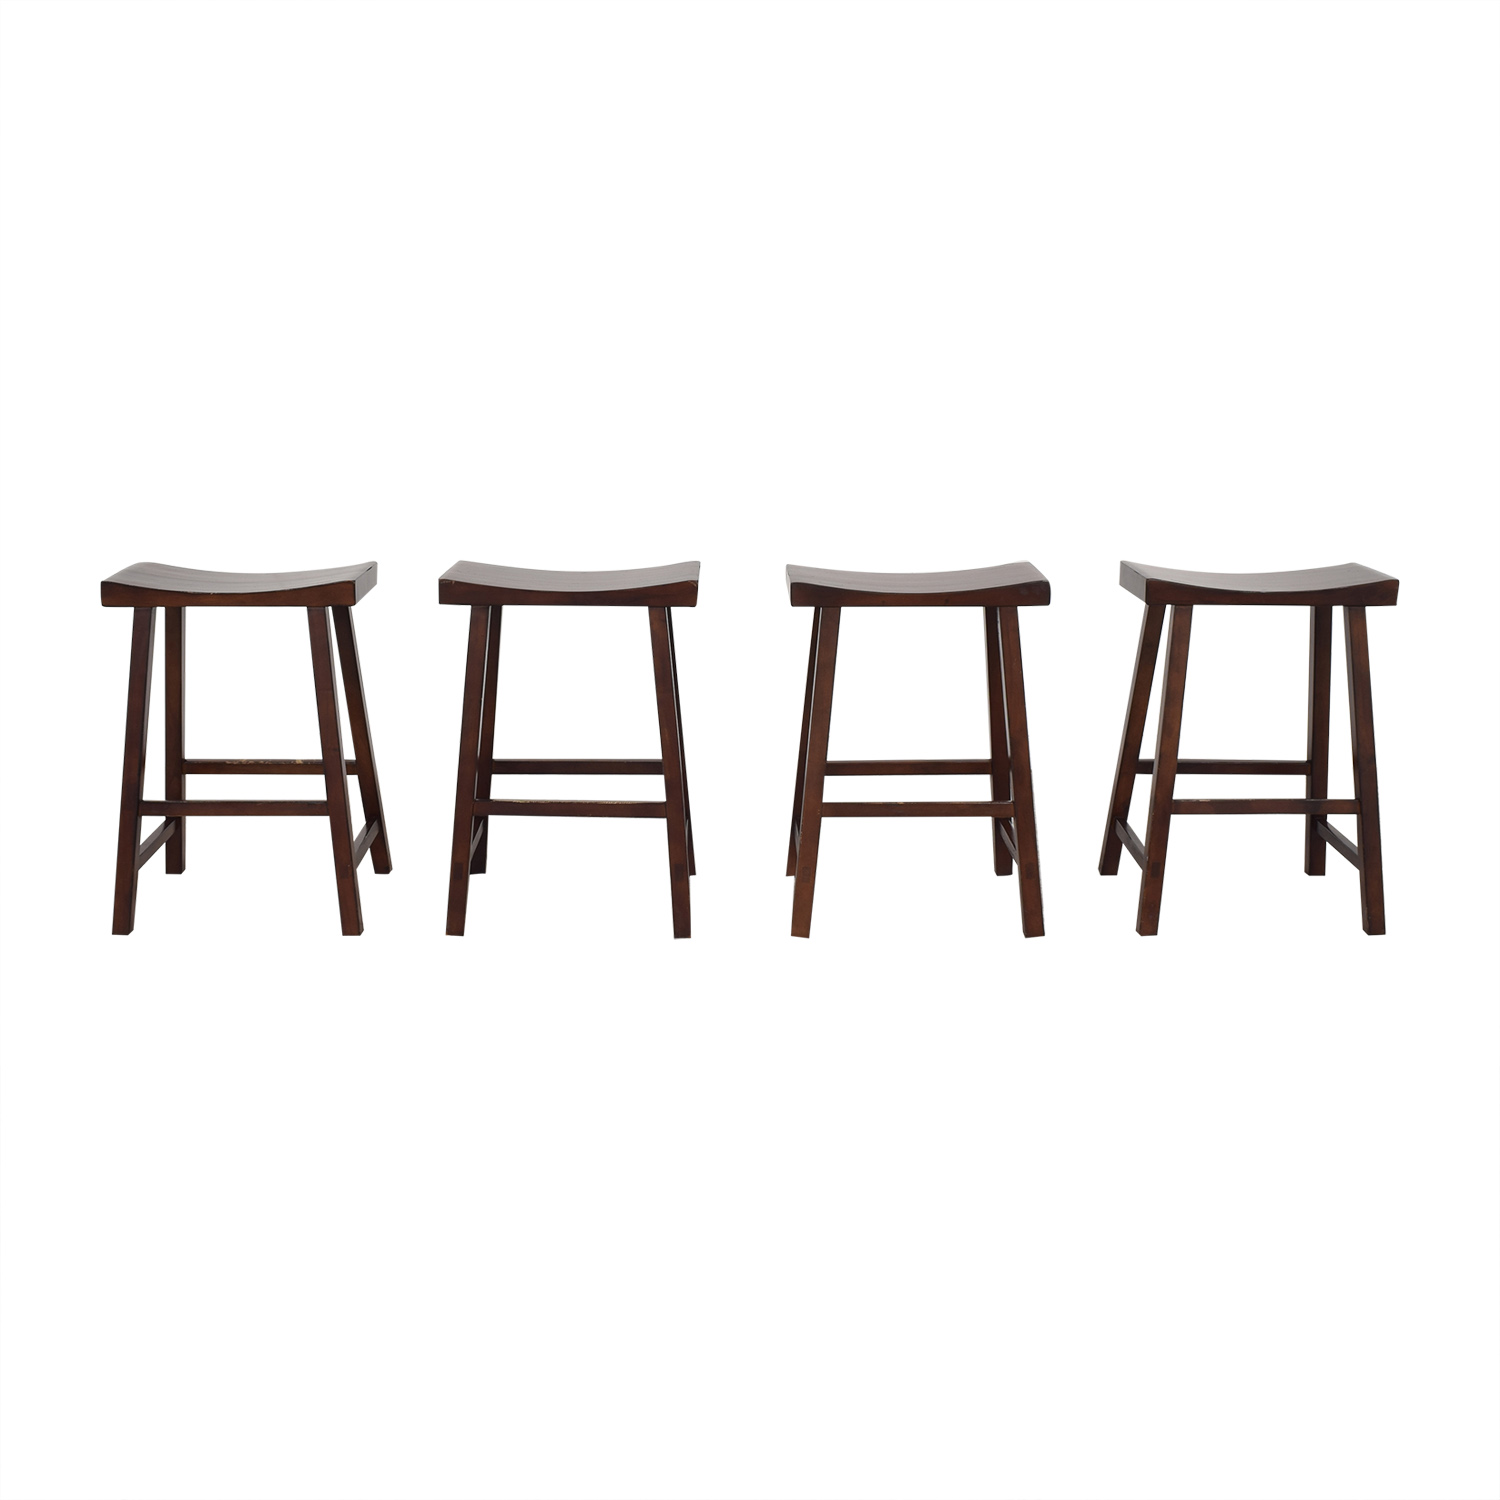 Pottery Barn Pottery Barn Tibetan Counter Stools ct